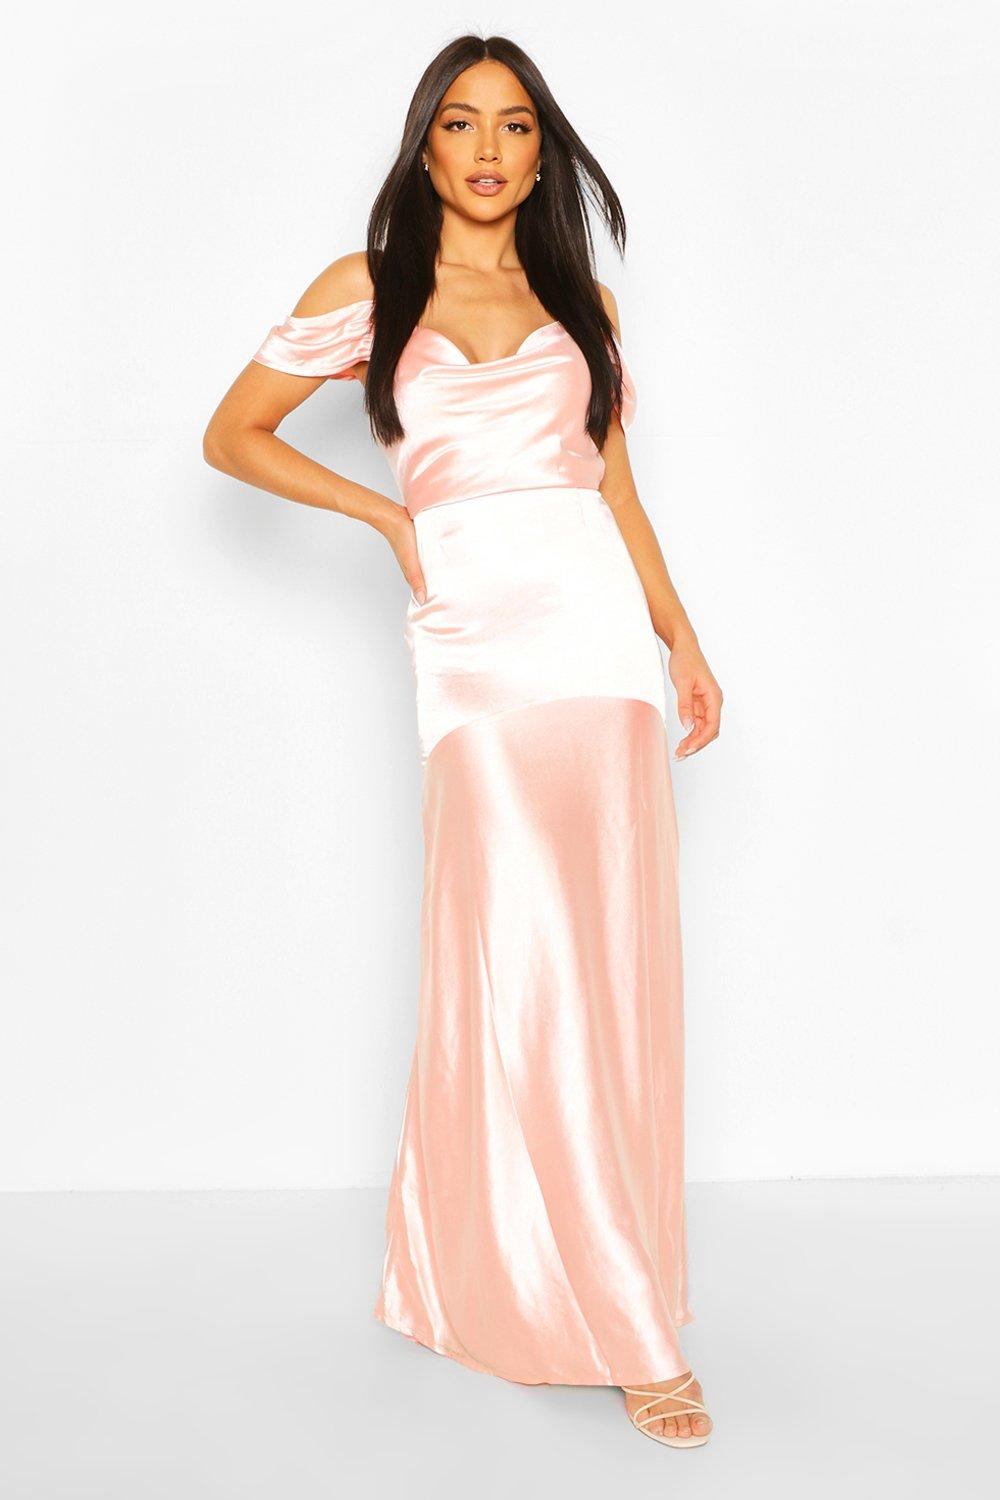 Vintage Evening Dresses and Formal Evening Gowns Womens Occasion Satin Cowl Peplum Hem Maxi Dress - Pink - 14 $25.00 AT vintagedancer.com